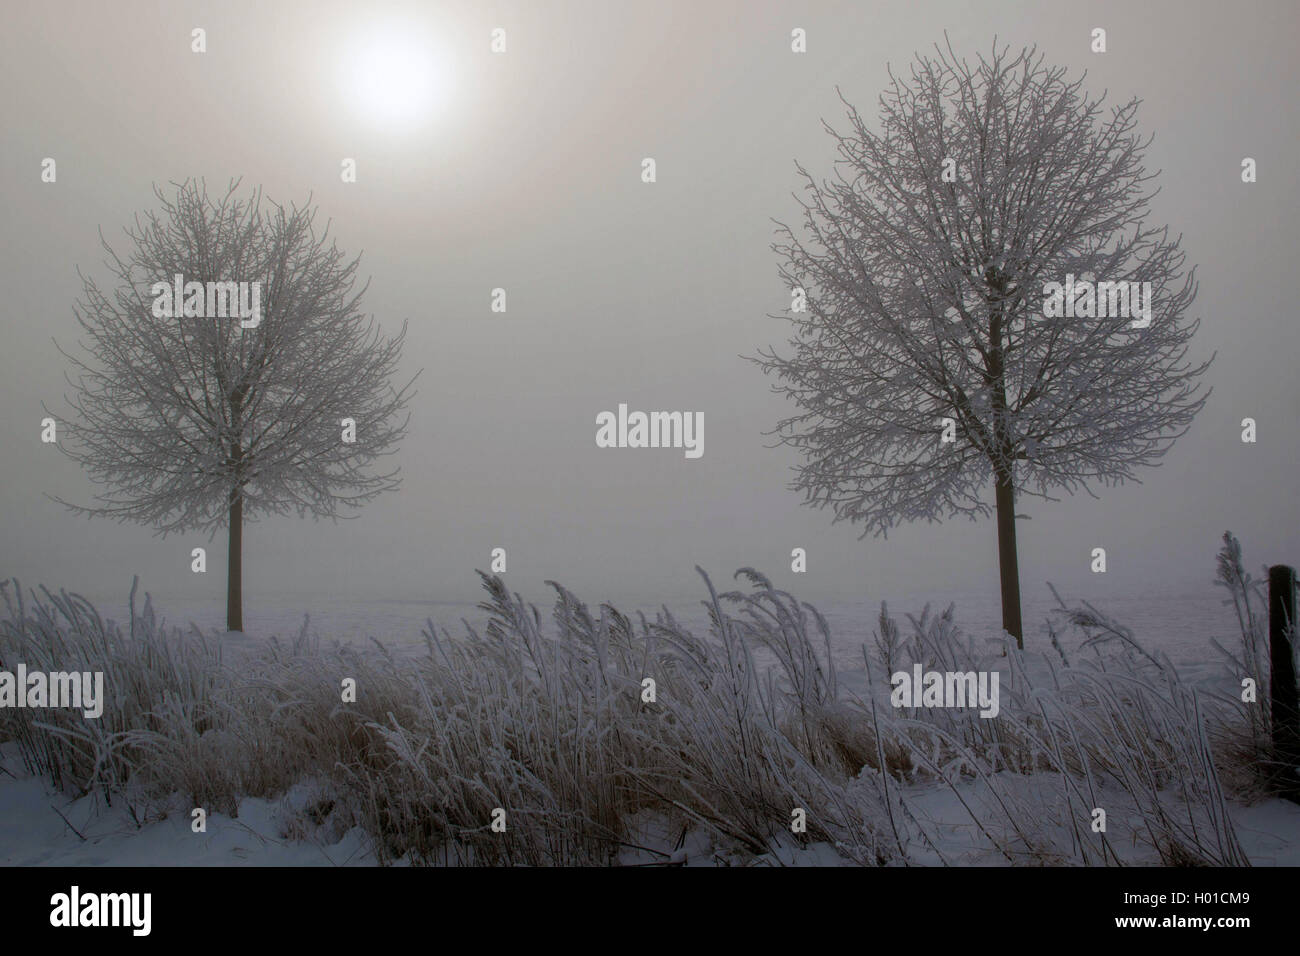 Winterlandschaft im Nebel am Morgen, Deutschland, Mecklenburg-Vorpommern, Biestow, Rostock | winter scenery with Stock Photo